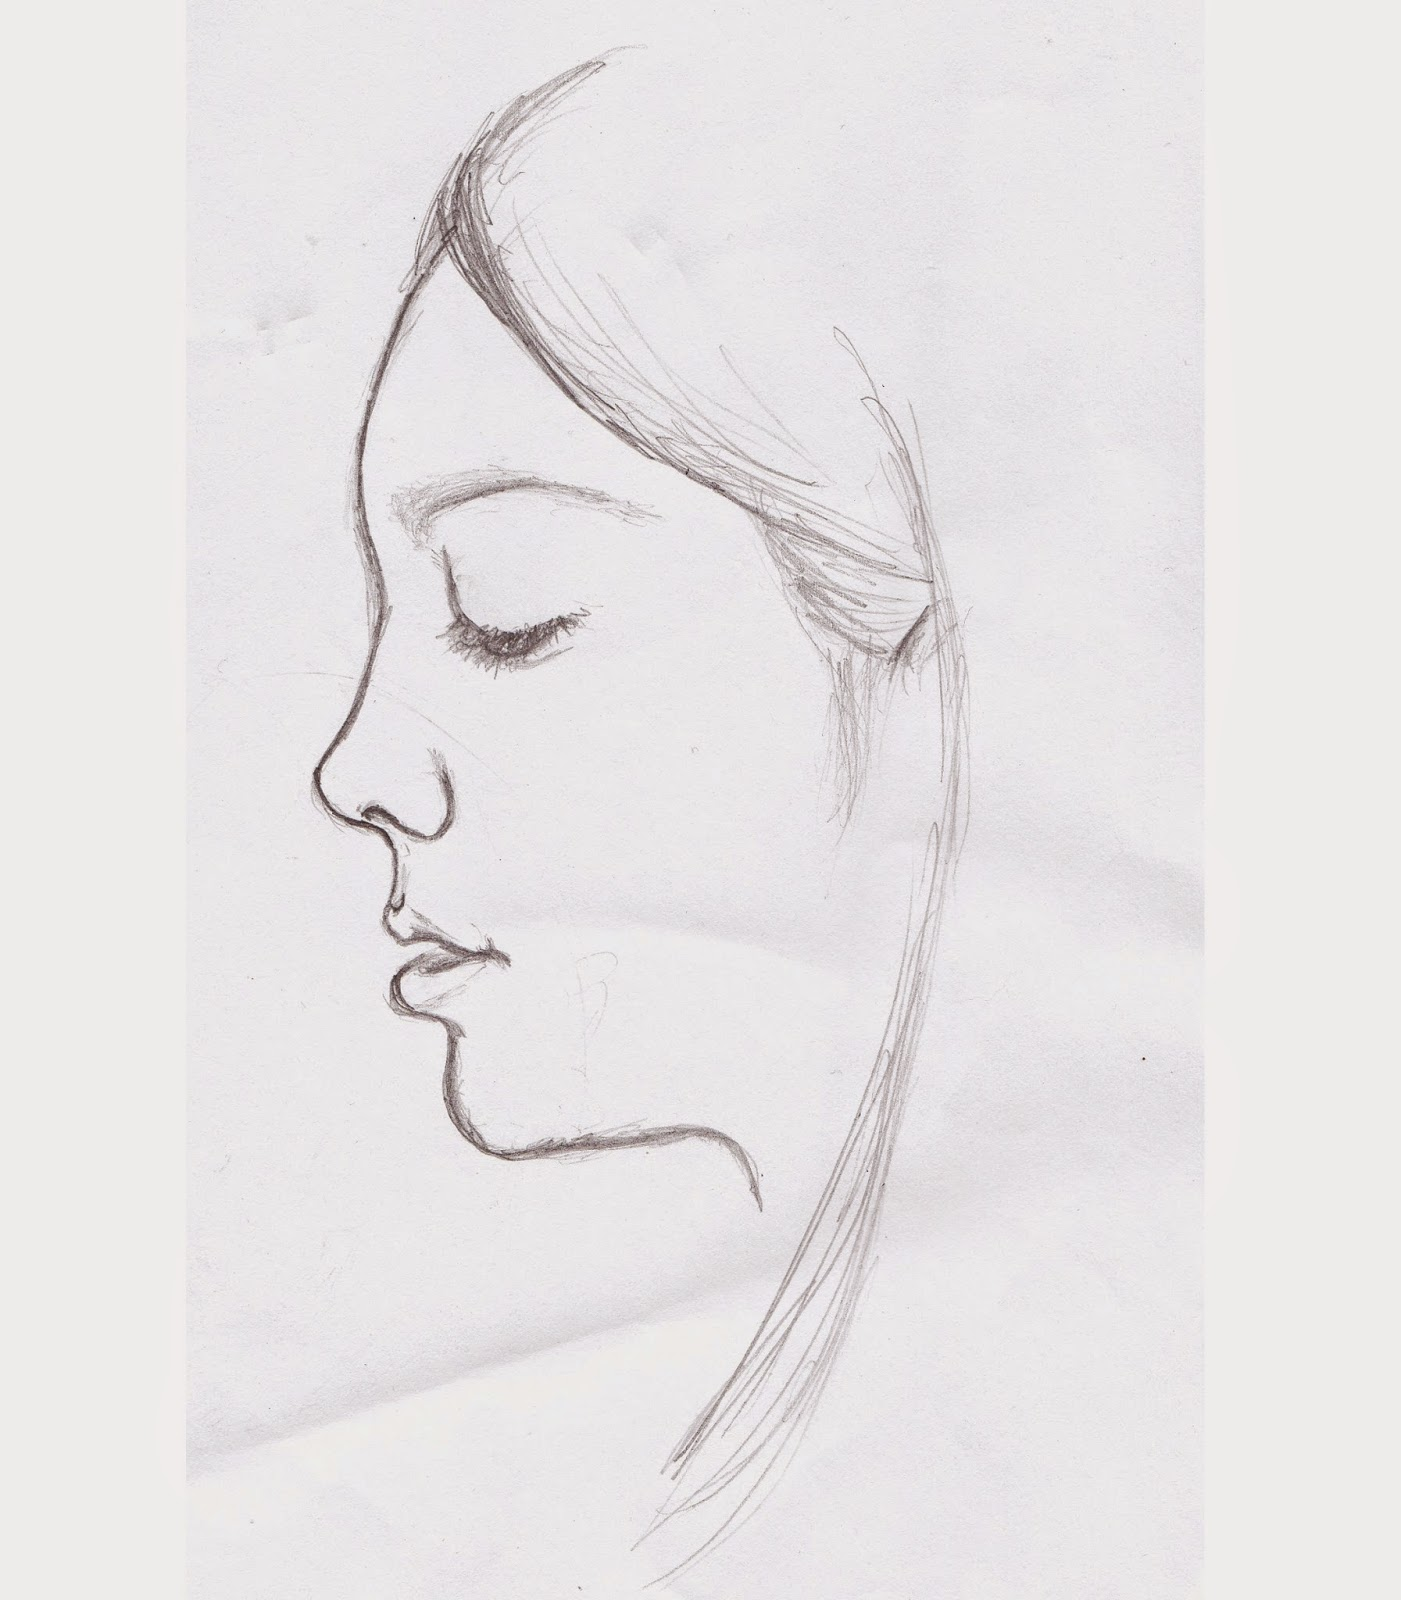 Profile Sketch of Isabella, pencil drawing on paper